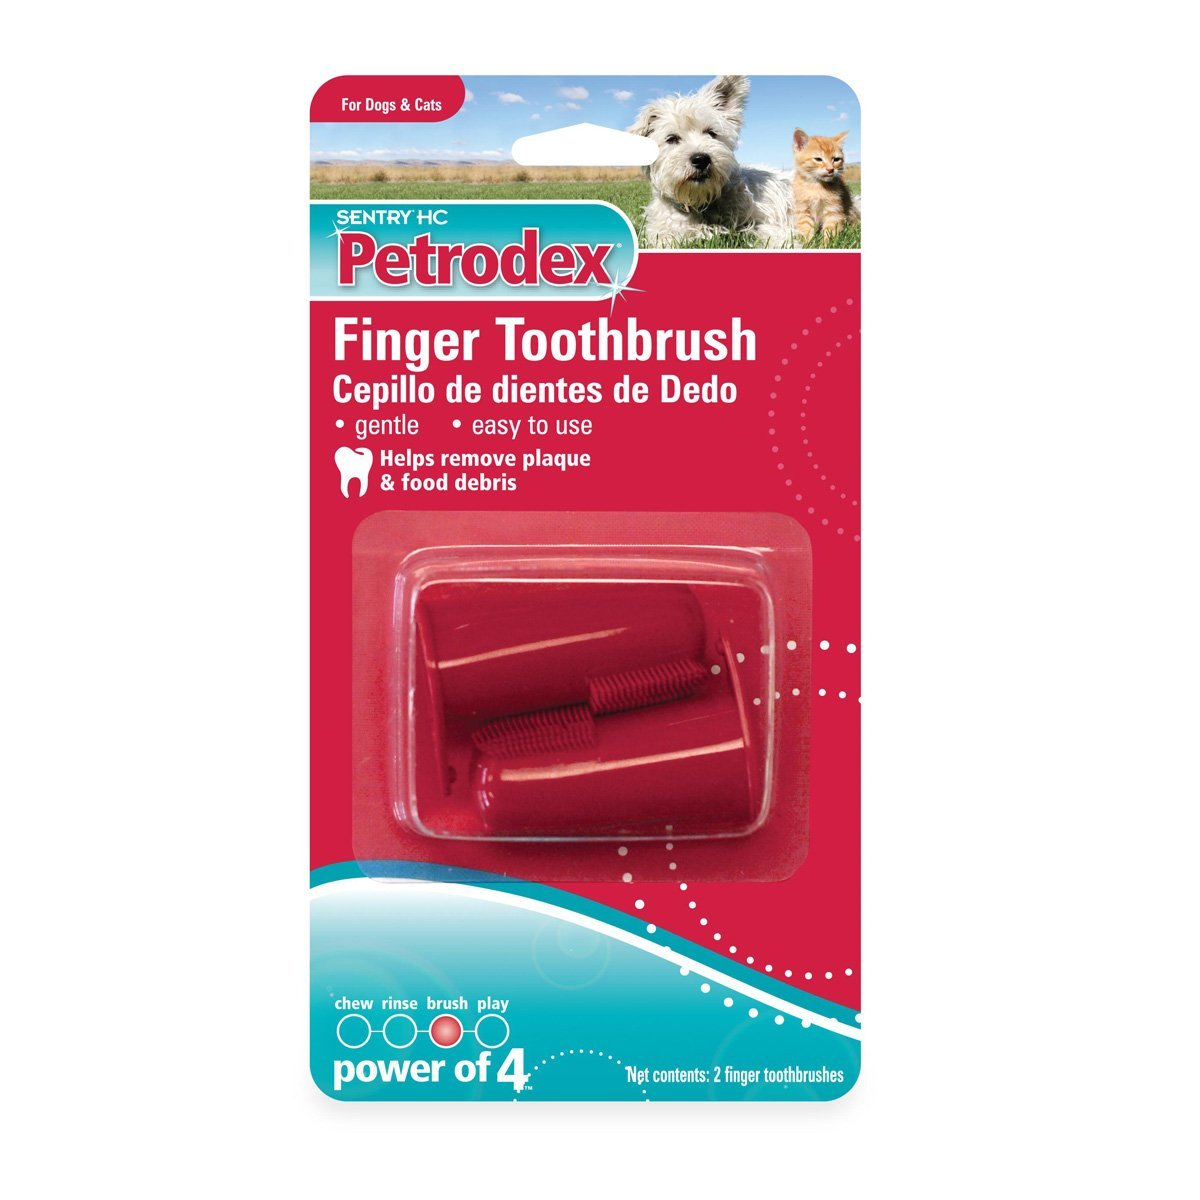 Petrodex Finger Toothbrush Dog and Cat